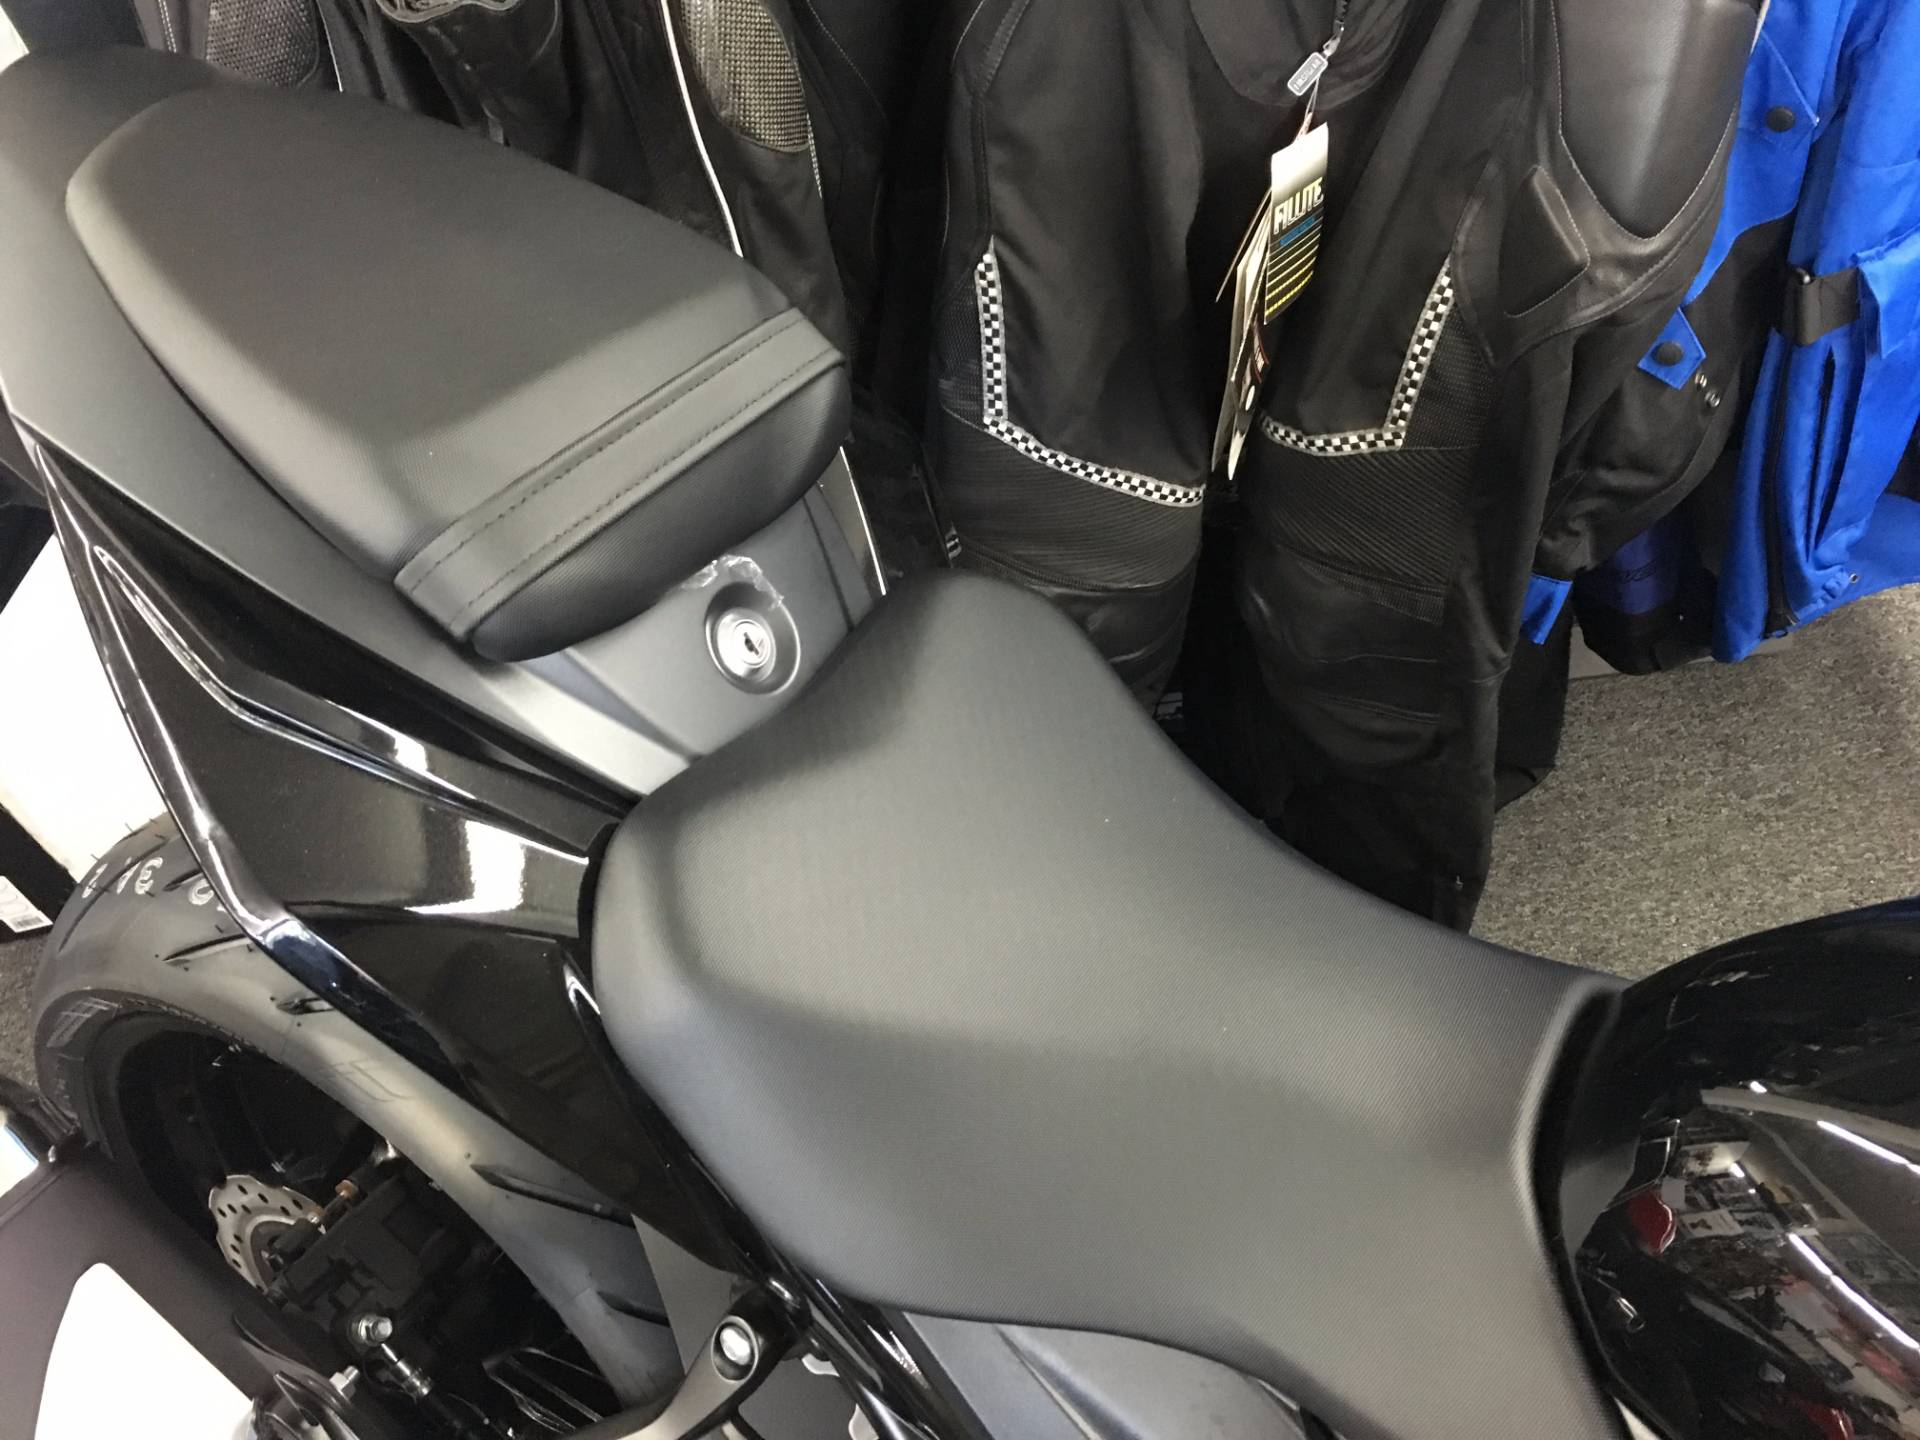 2018 Suzuki GSX-S750 in Van Nuys, California